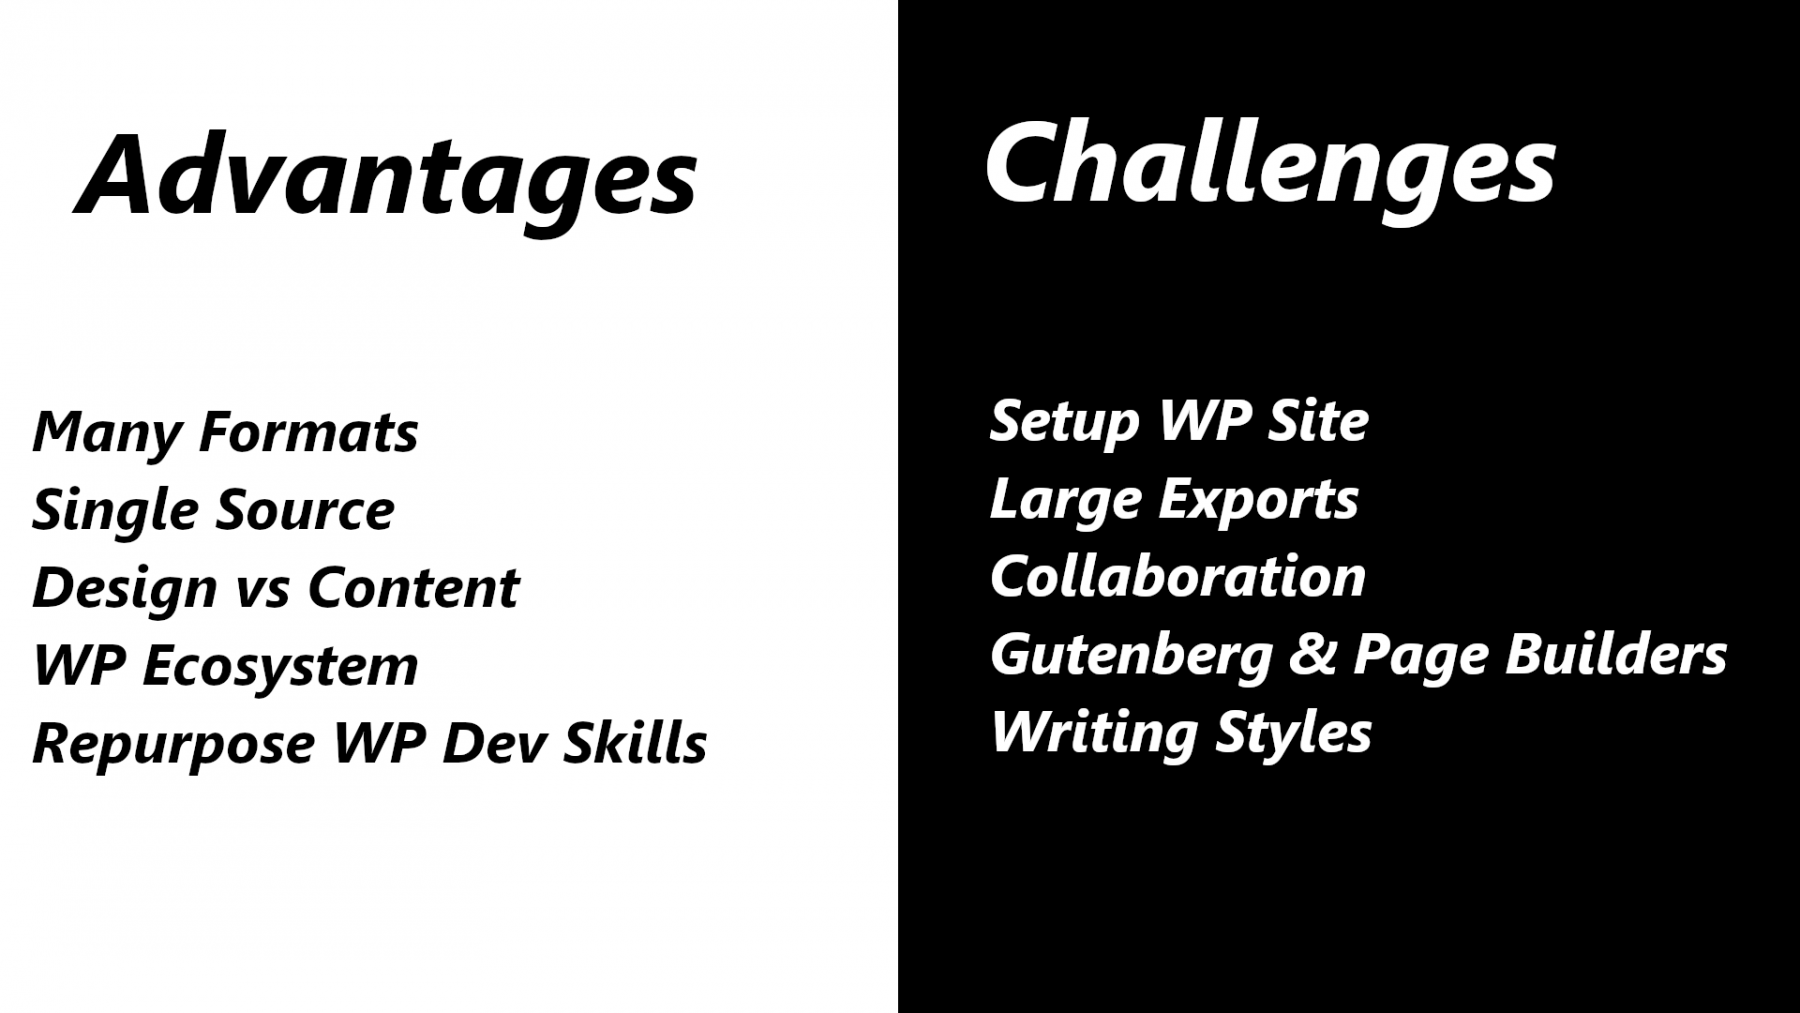 Advantages: many formats, single source, design separated from content, huge ecosystem, repurpose WP dev skills. Challenges: setup WP sites, large exports, collaboration, Gutenberg and Page Builders, and writing styles.